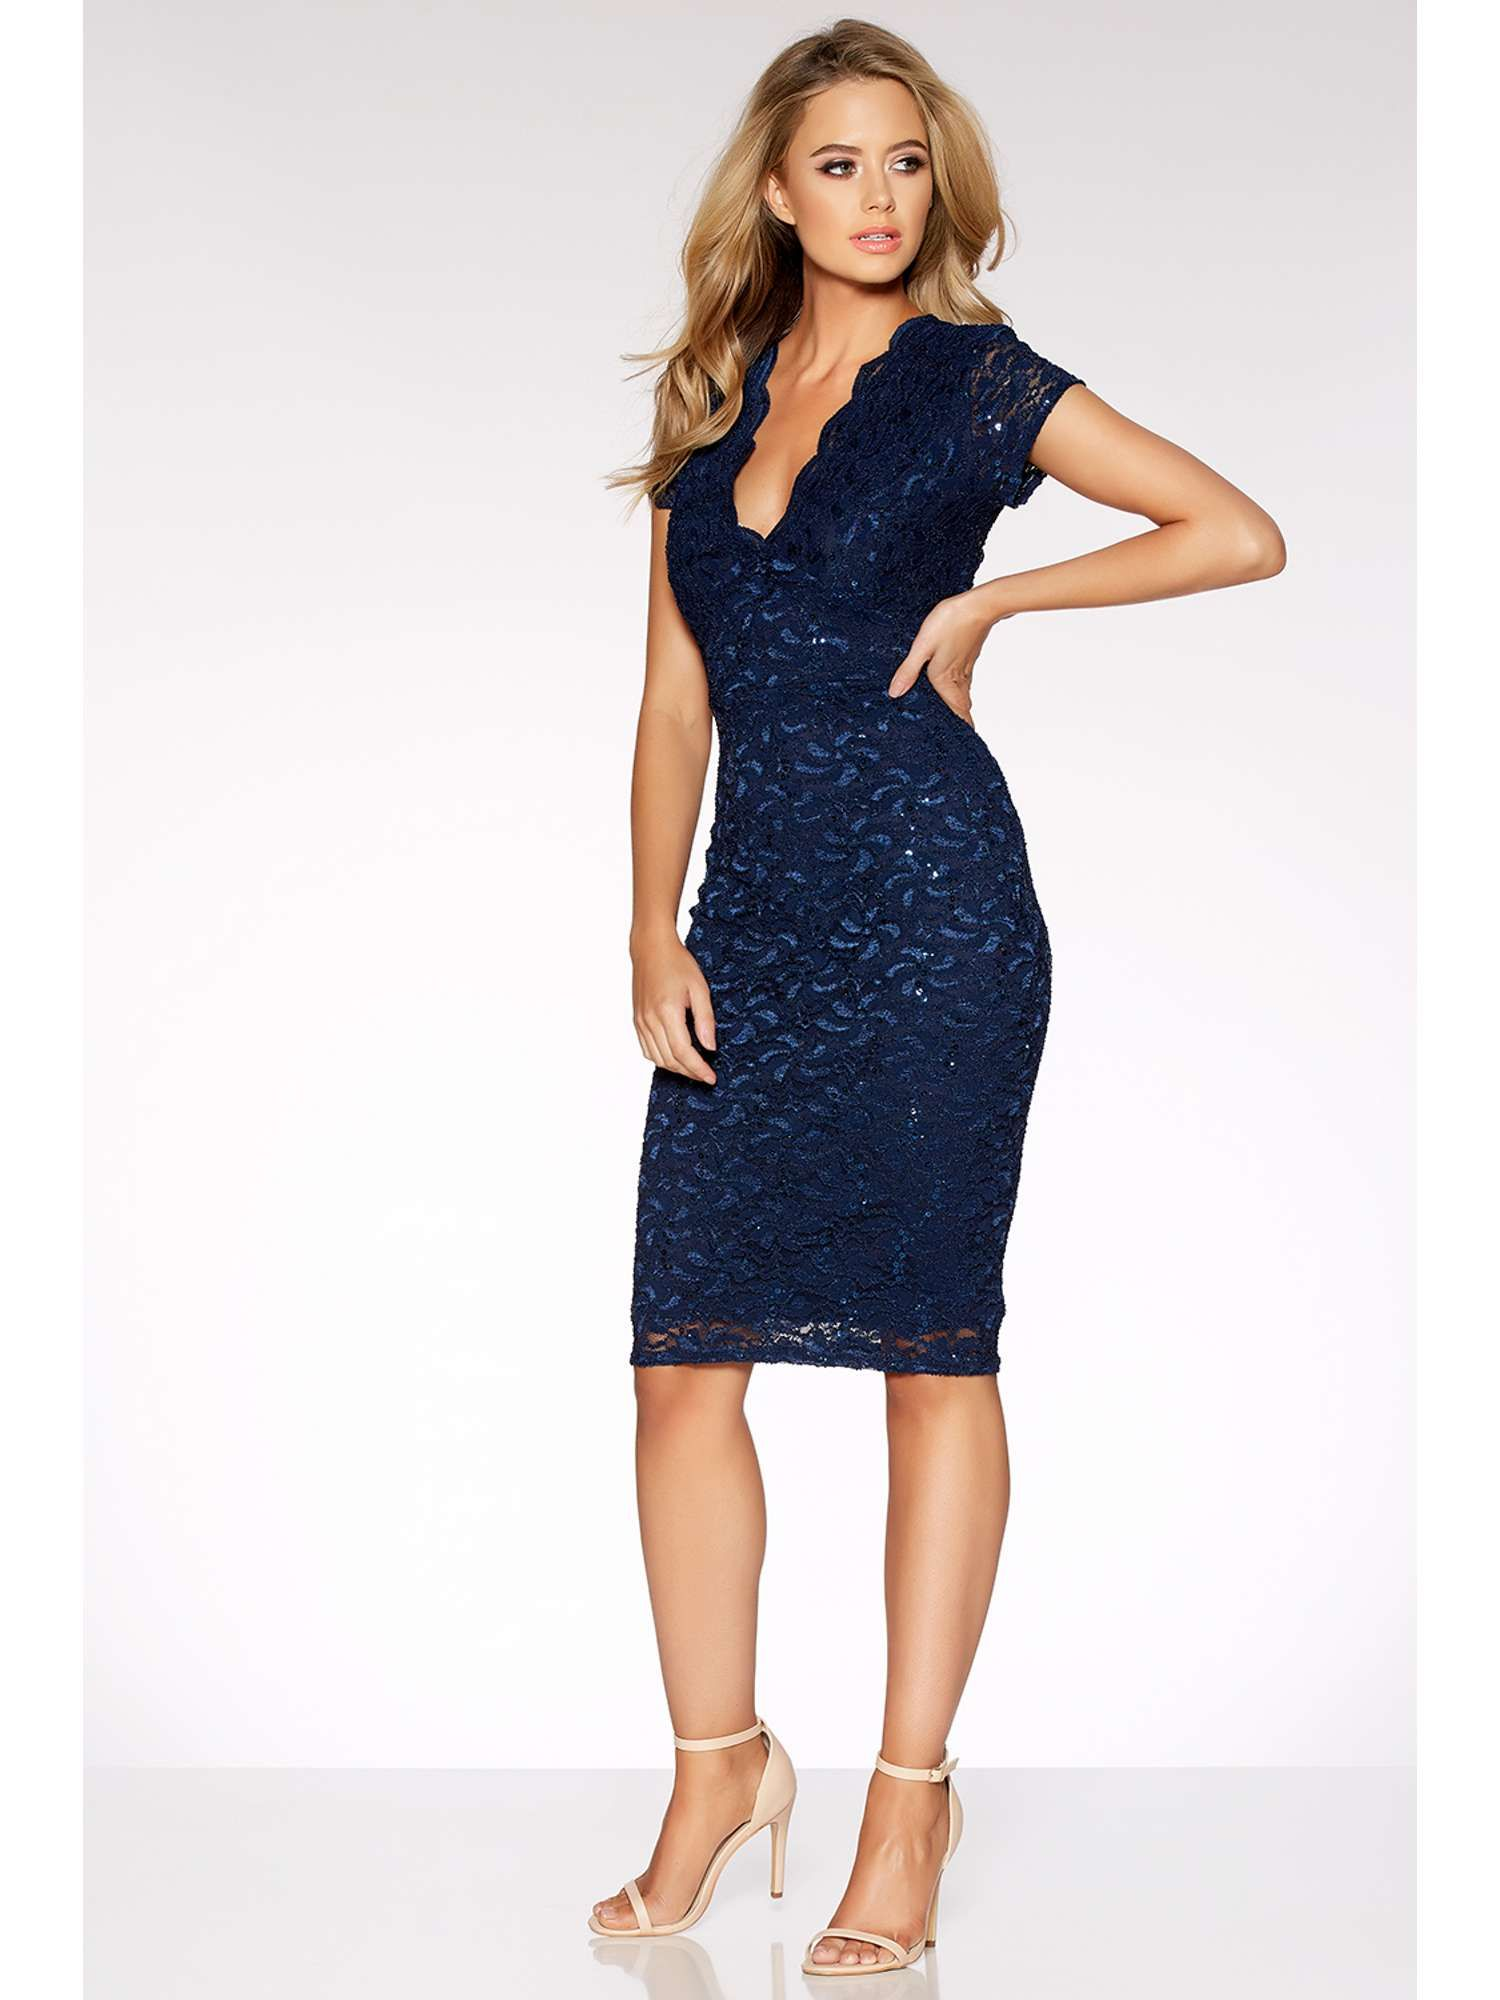 4de4072759bb £36 --- House of Fraser - Quiz Navy Sequin Lace Cap Sleeve Midi Dress in  Navy -- Perfect cruise attire!